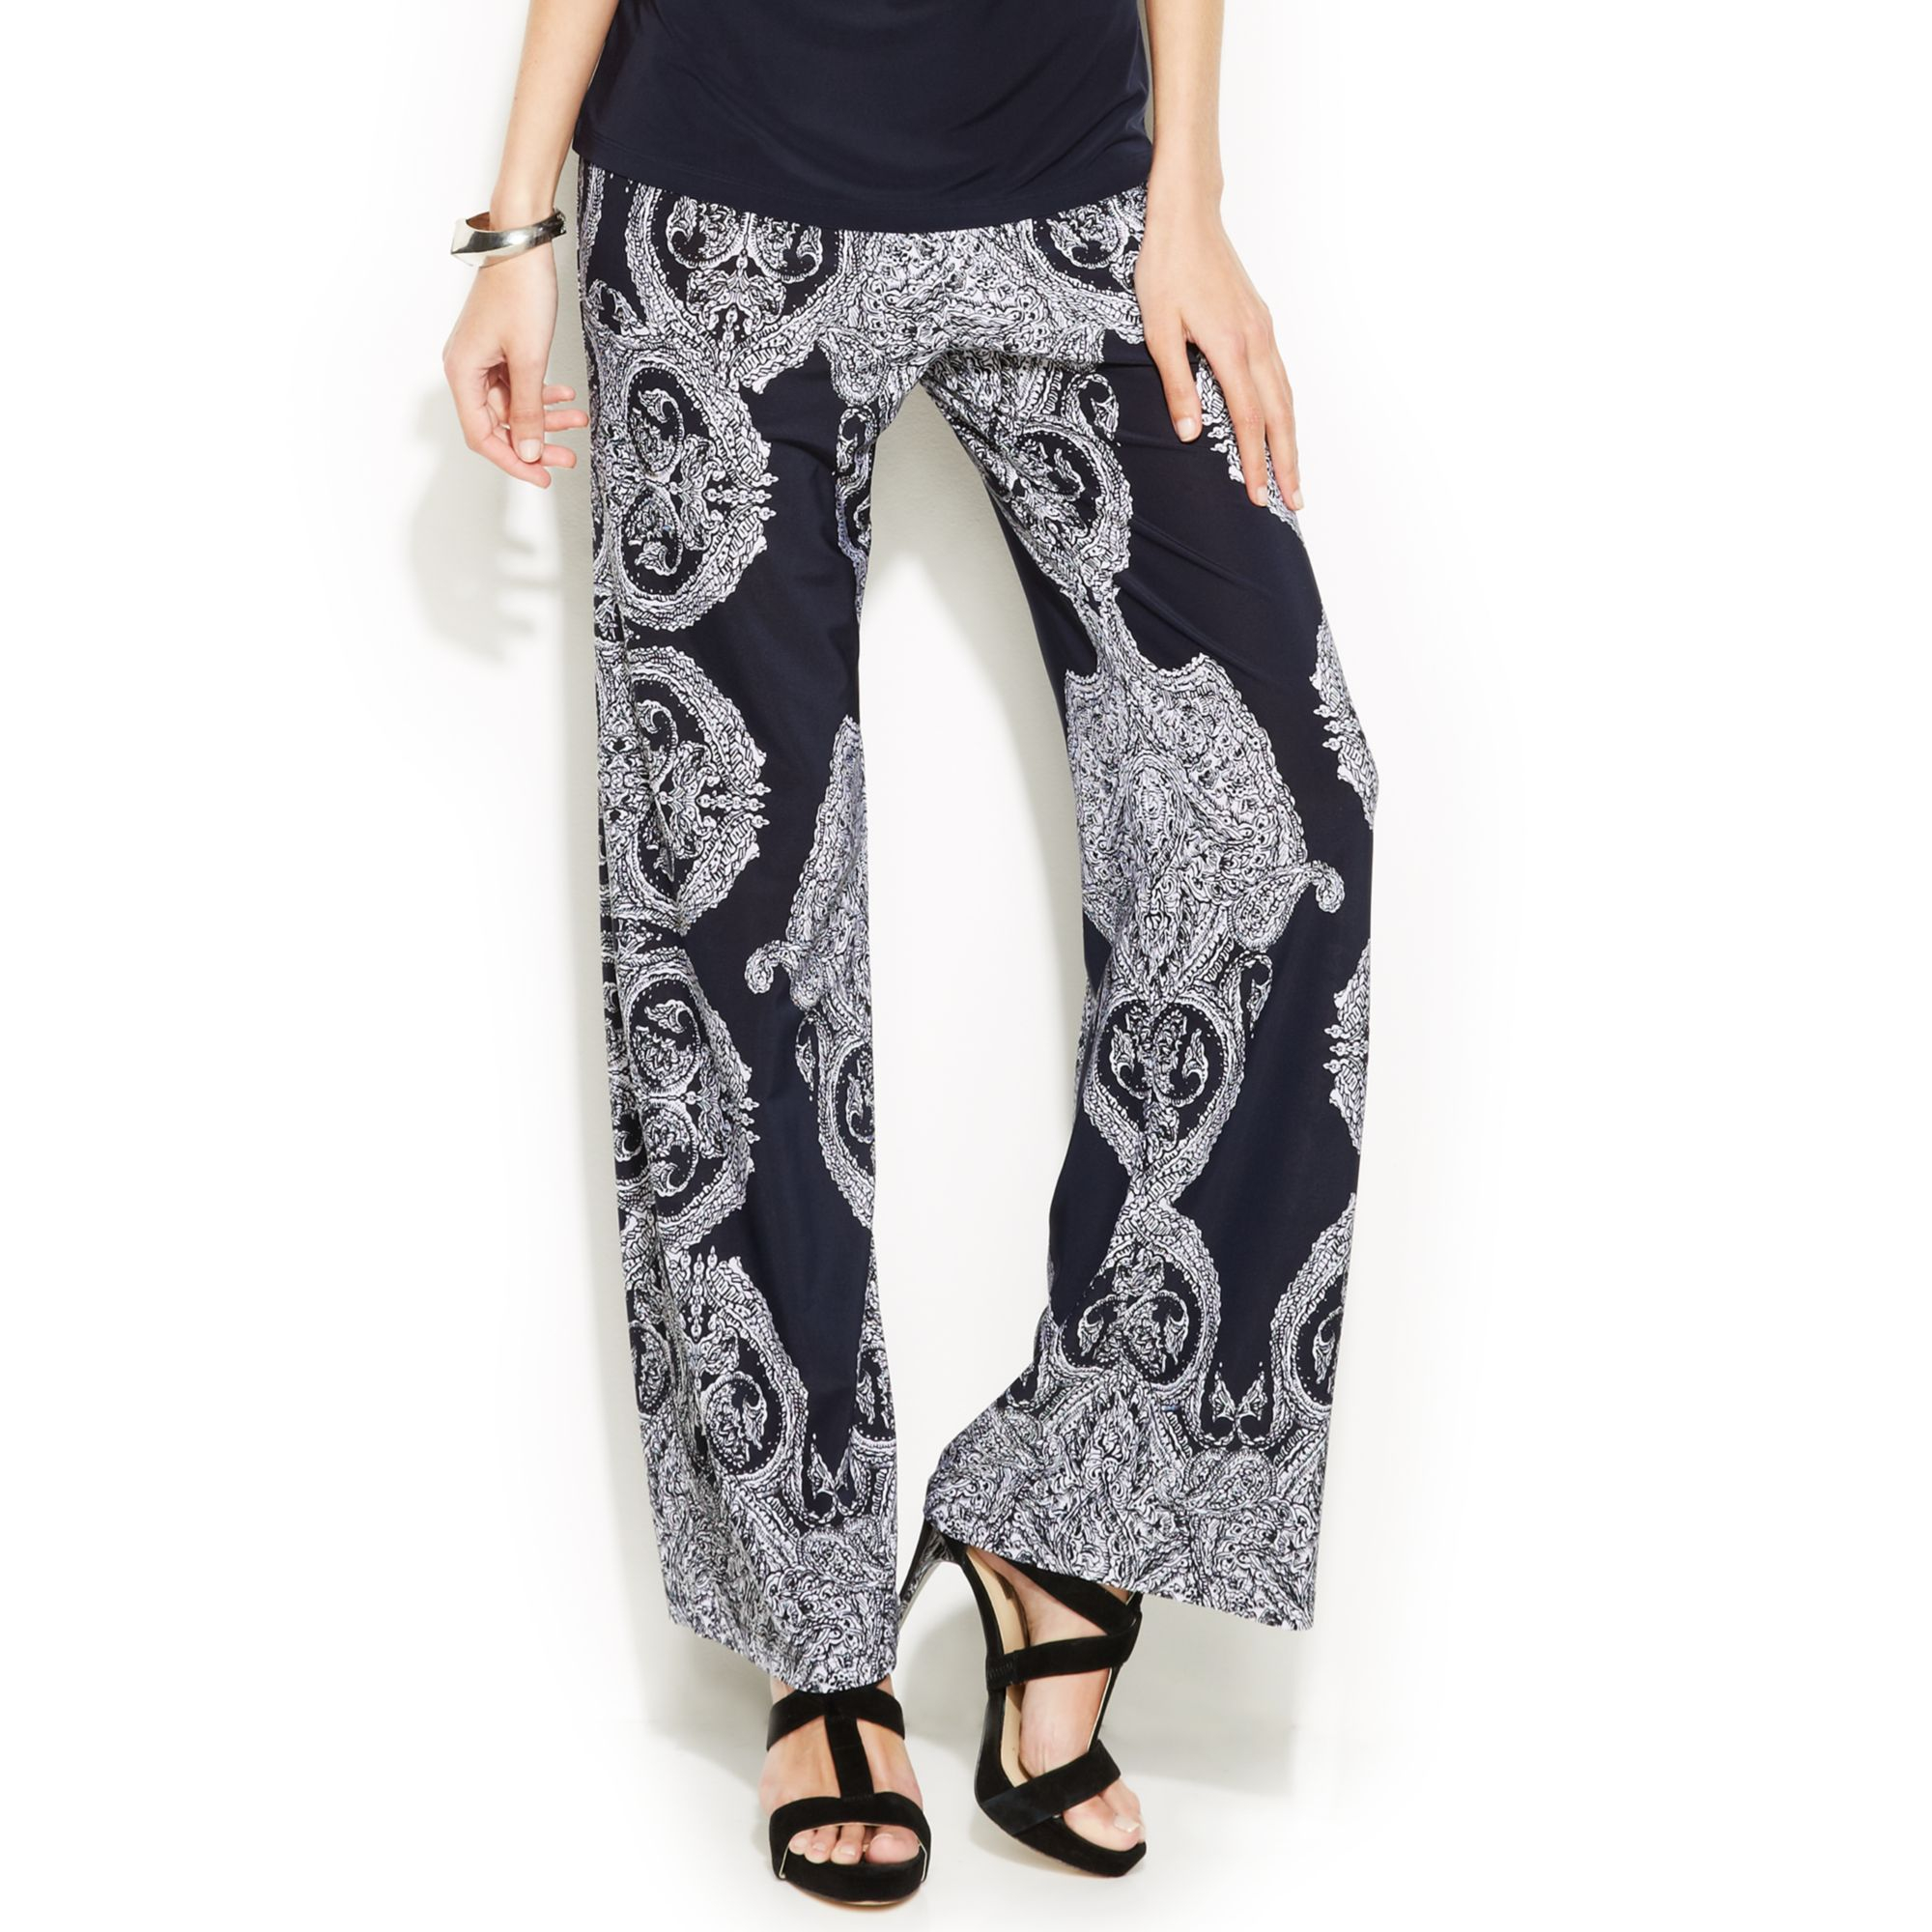 Inc international concepts Petite Printed Wideleg Soft Pants in ...